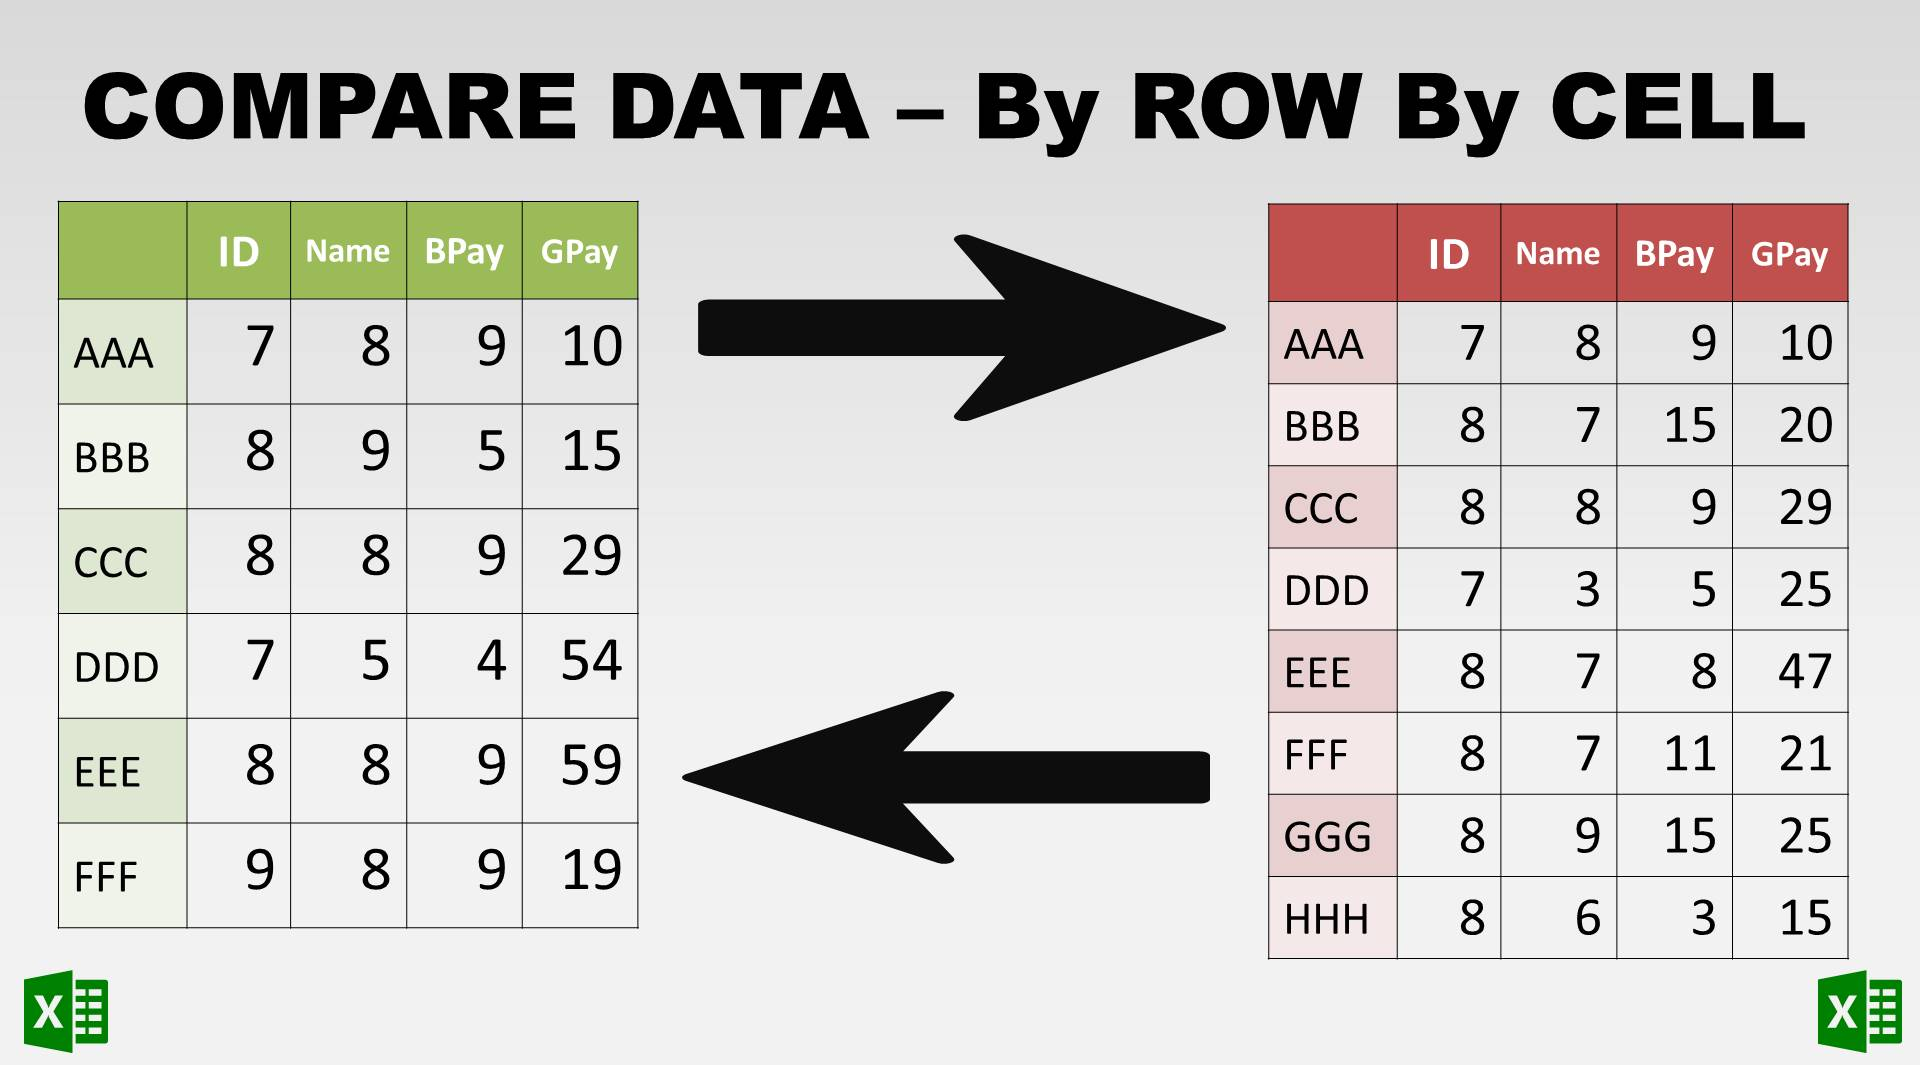 Compare Data Workbook – Compare Data by Row by Cell with Excel VBA Workbook